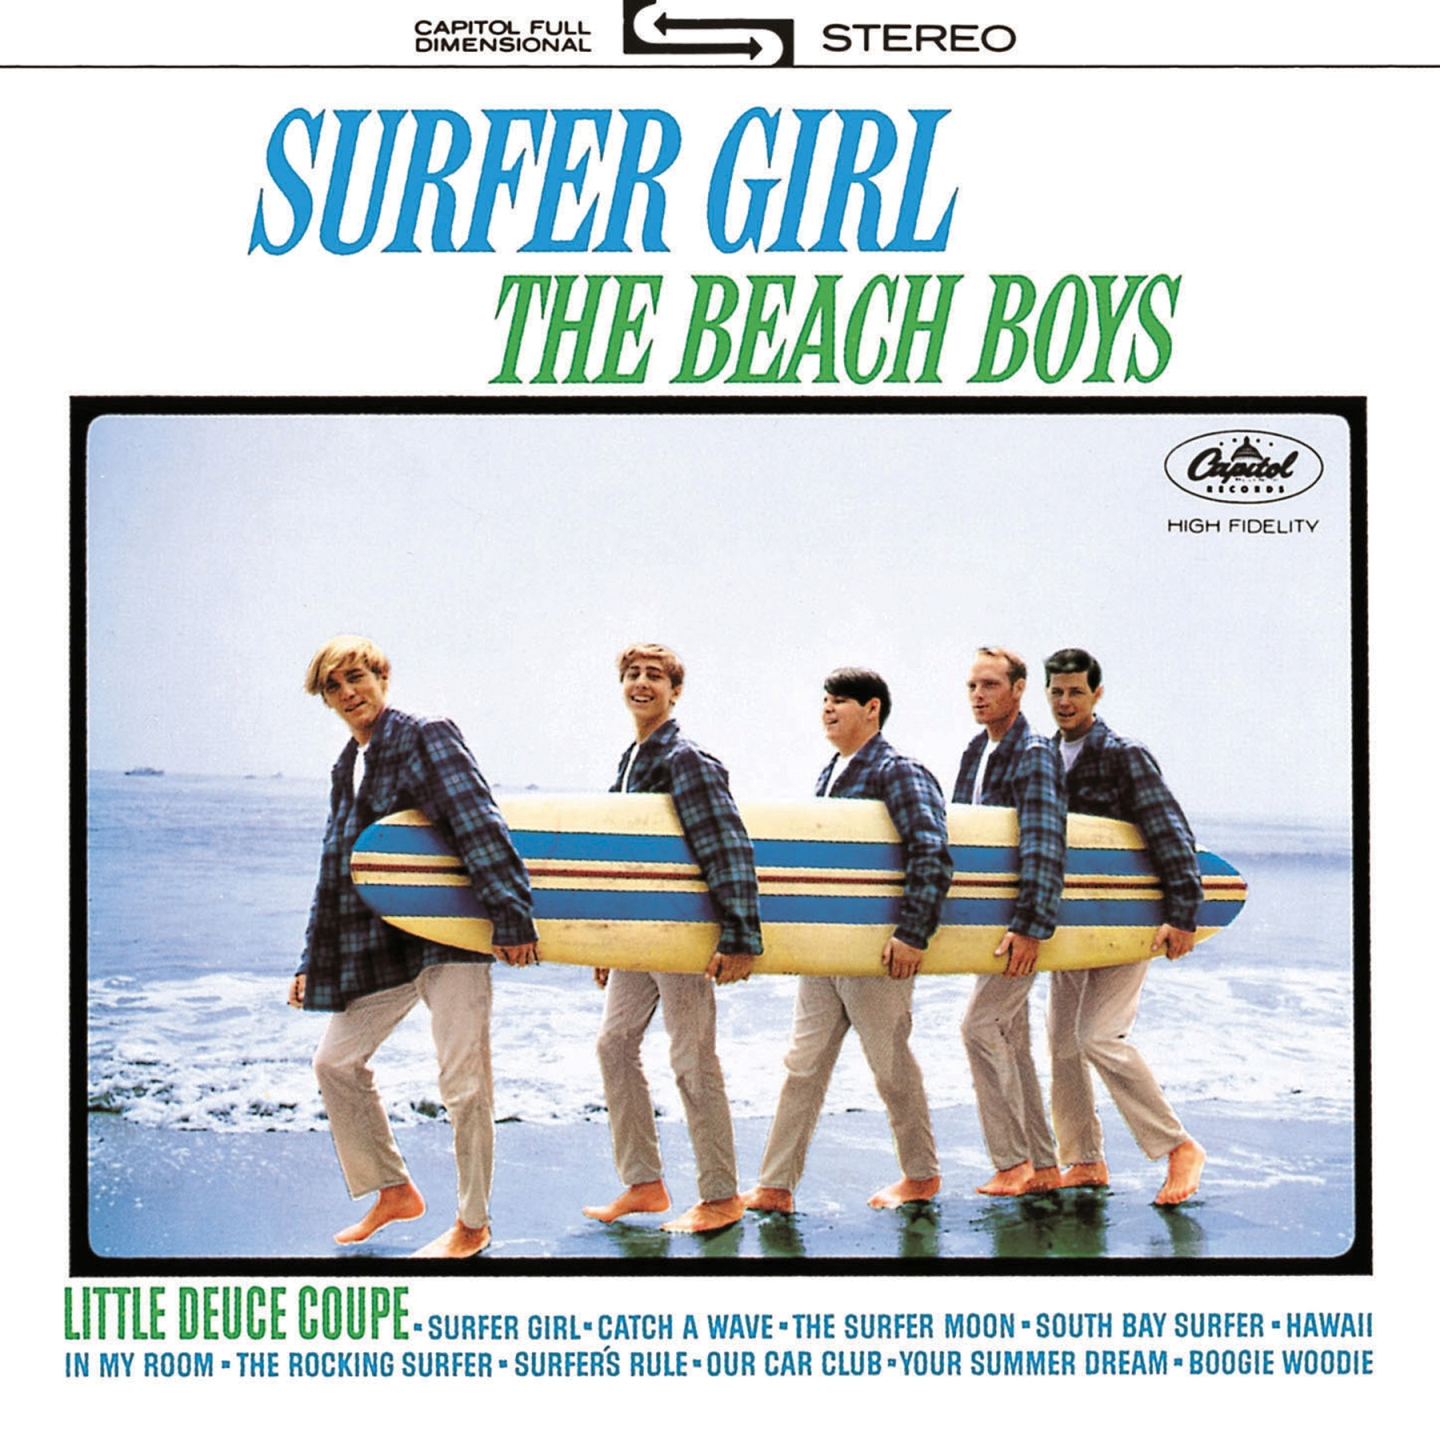 Cover of the SURFER GIRL album by the Beach Boys